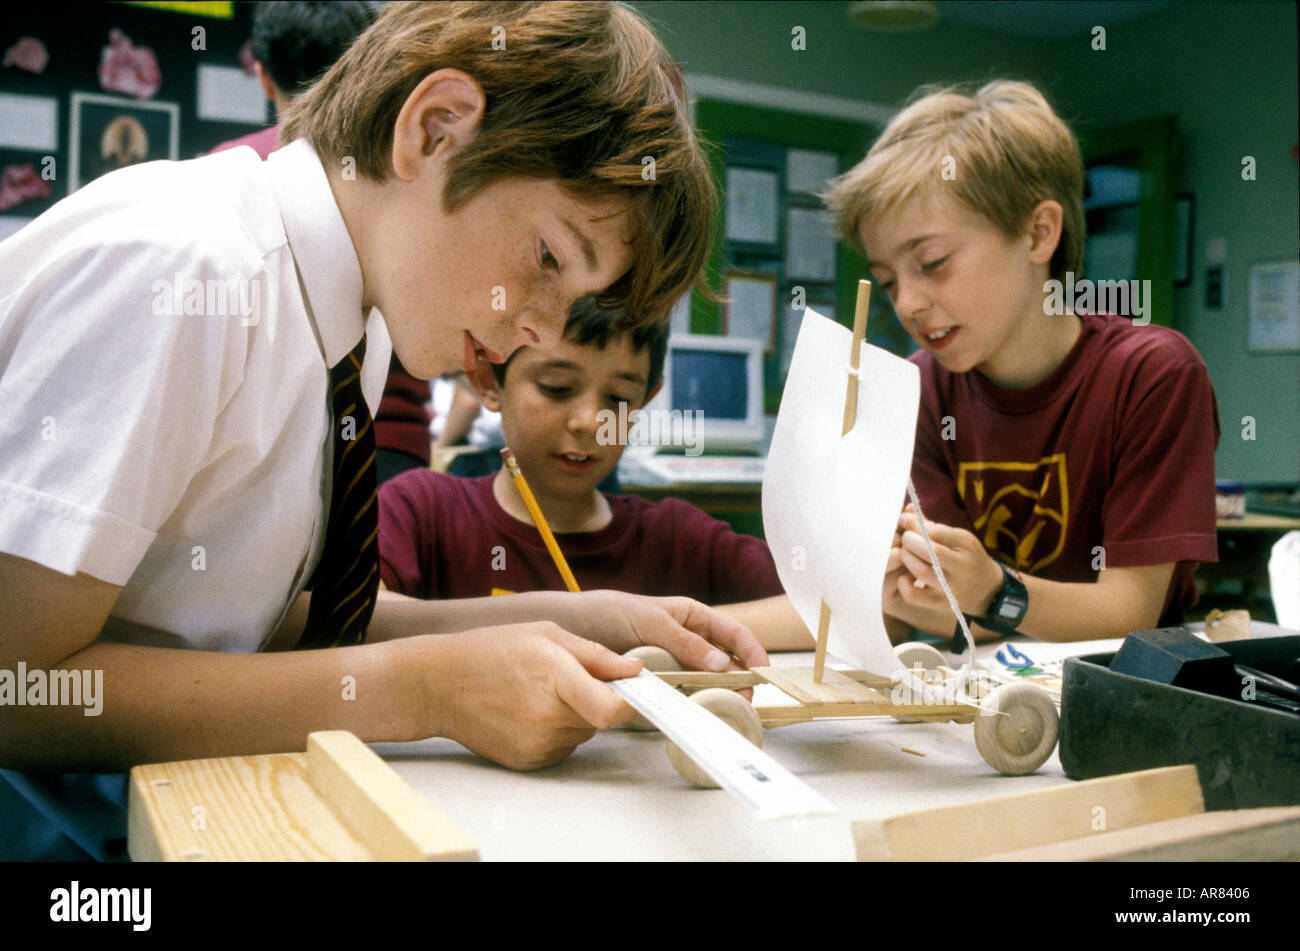 Design Technology class in secondary school - Stock Image